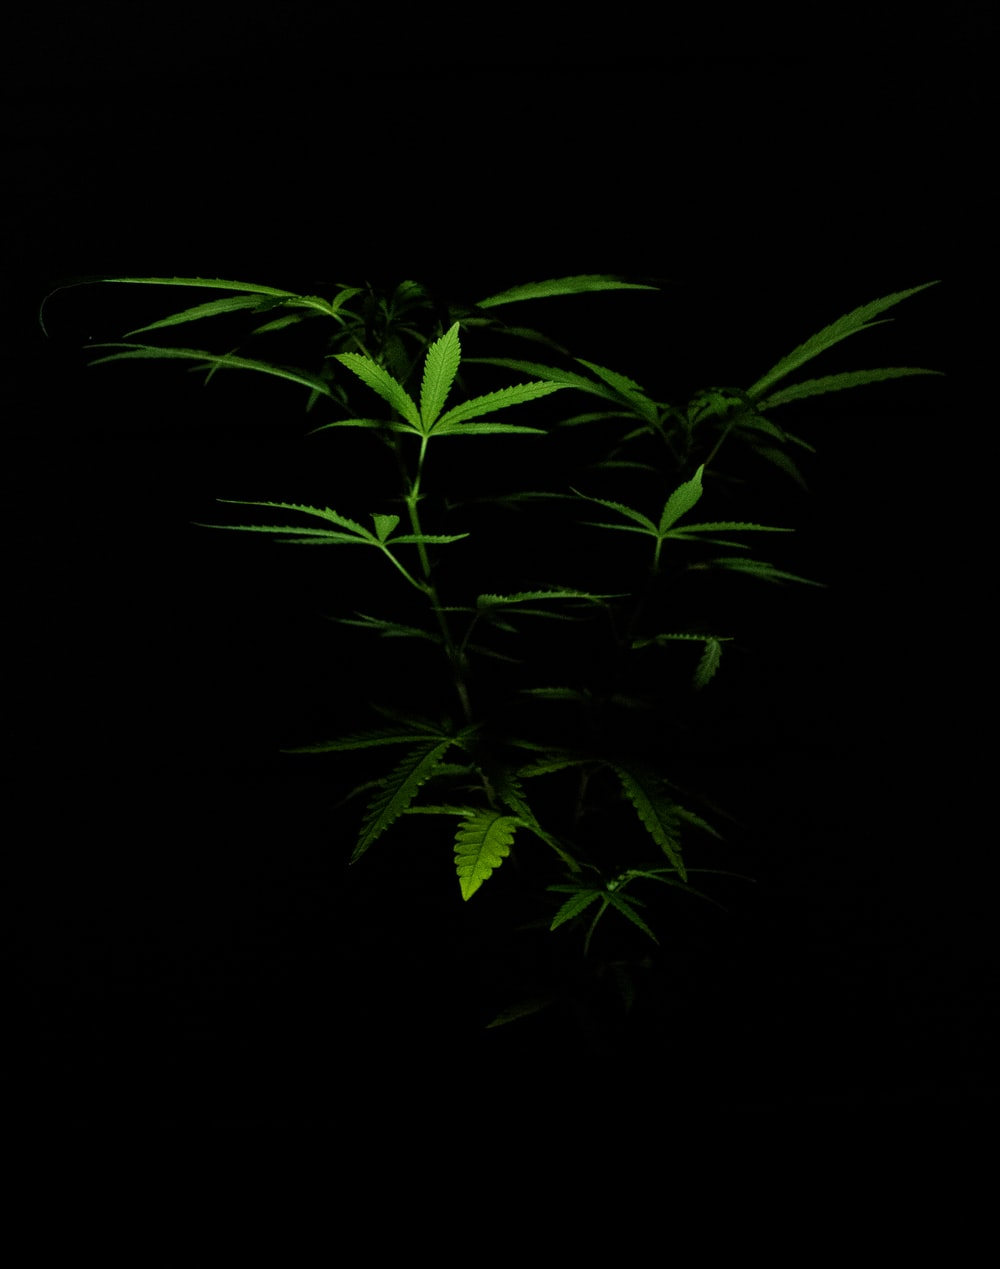 green plant in black background